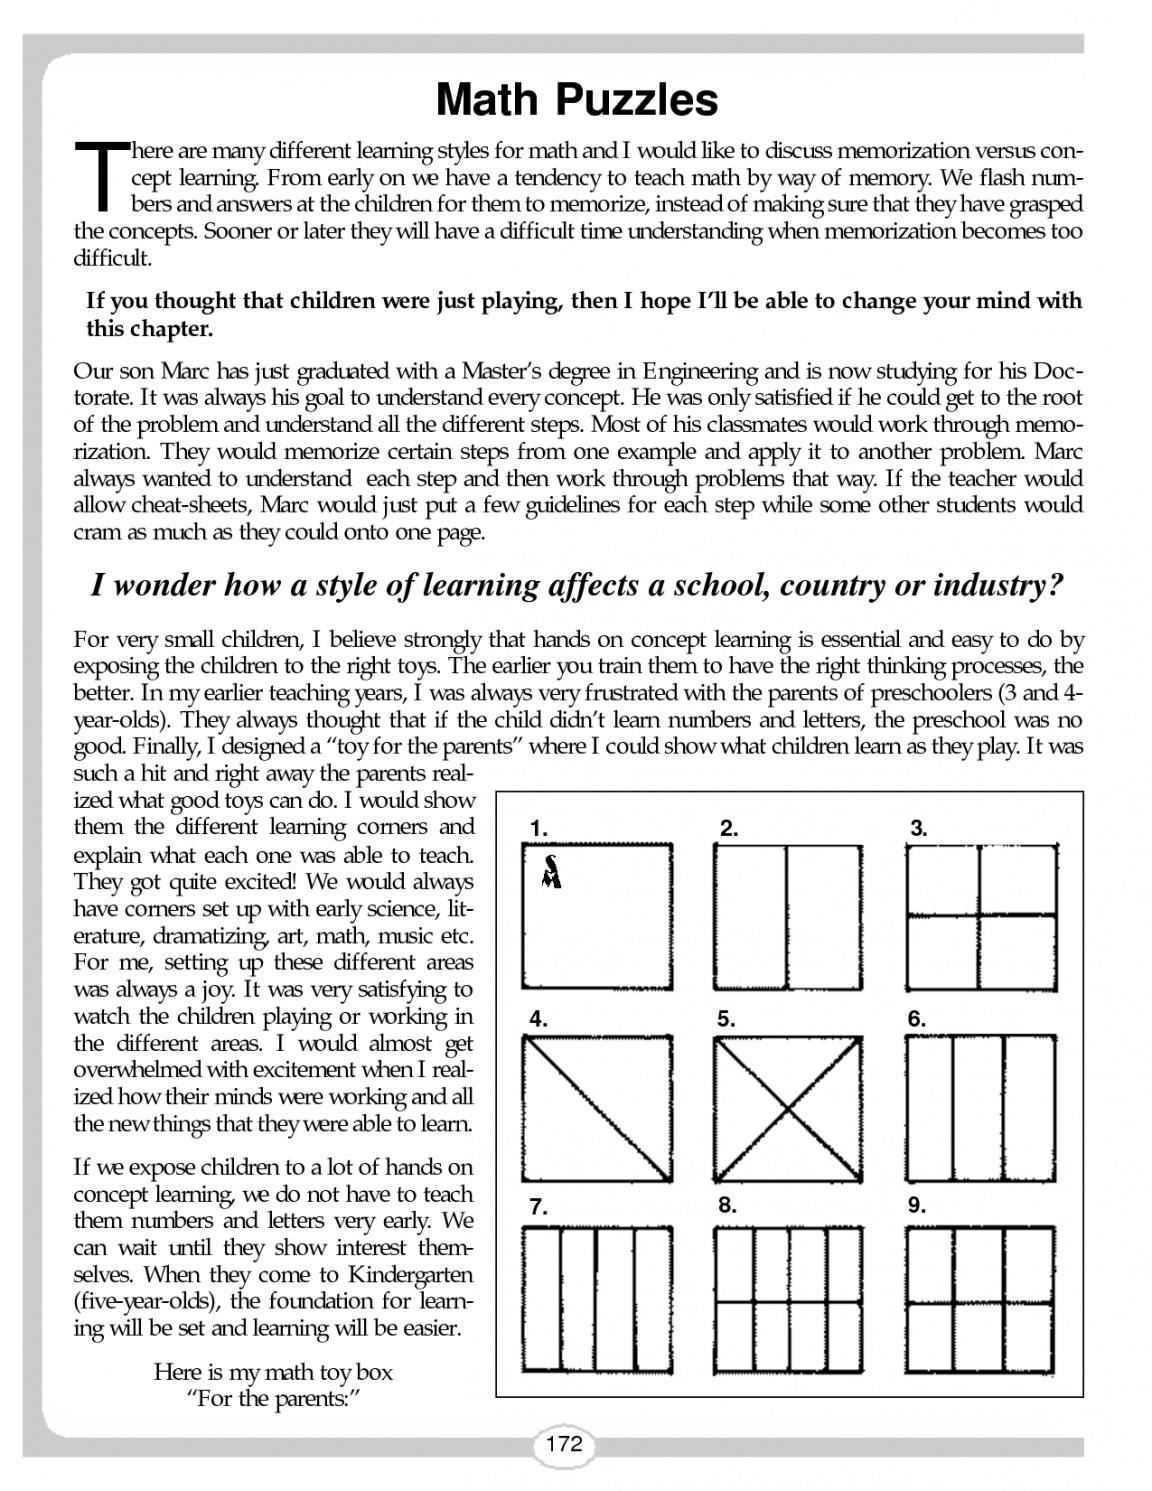 Free Printable Logic Puzzles For High School Students   Free Printables - Printable Math Puzzles For High School